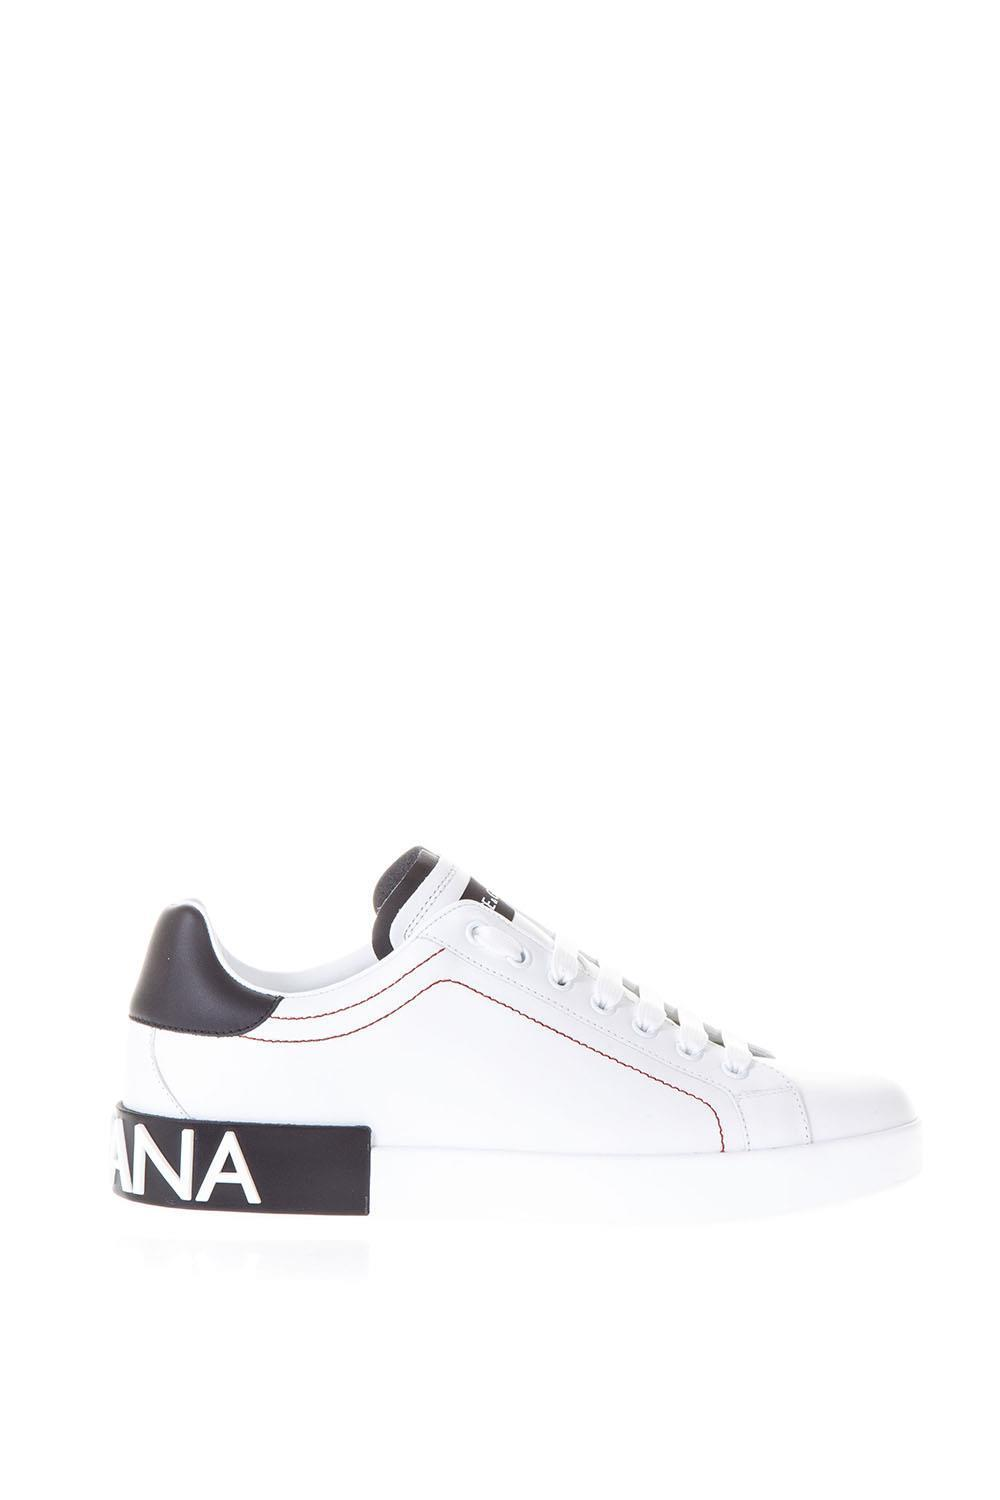 b5077f49c9 Lyst - Dolce & Gabbana Portofino Lace-up Sneakers in White for Men